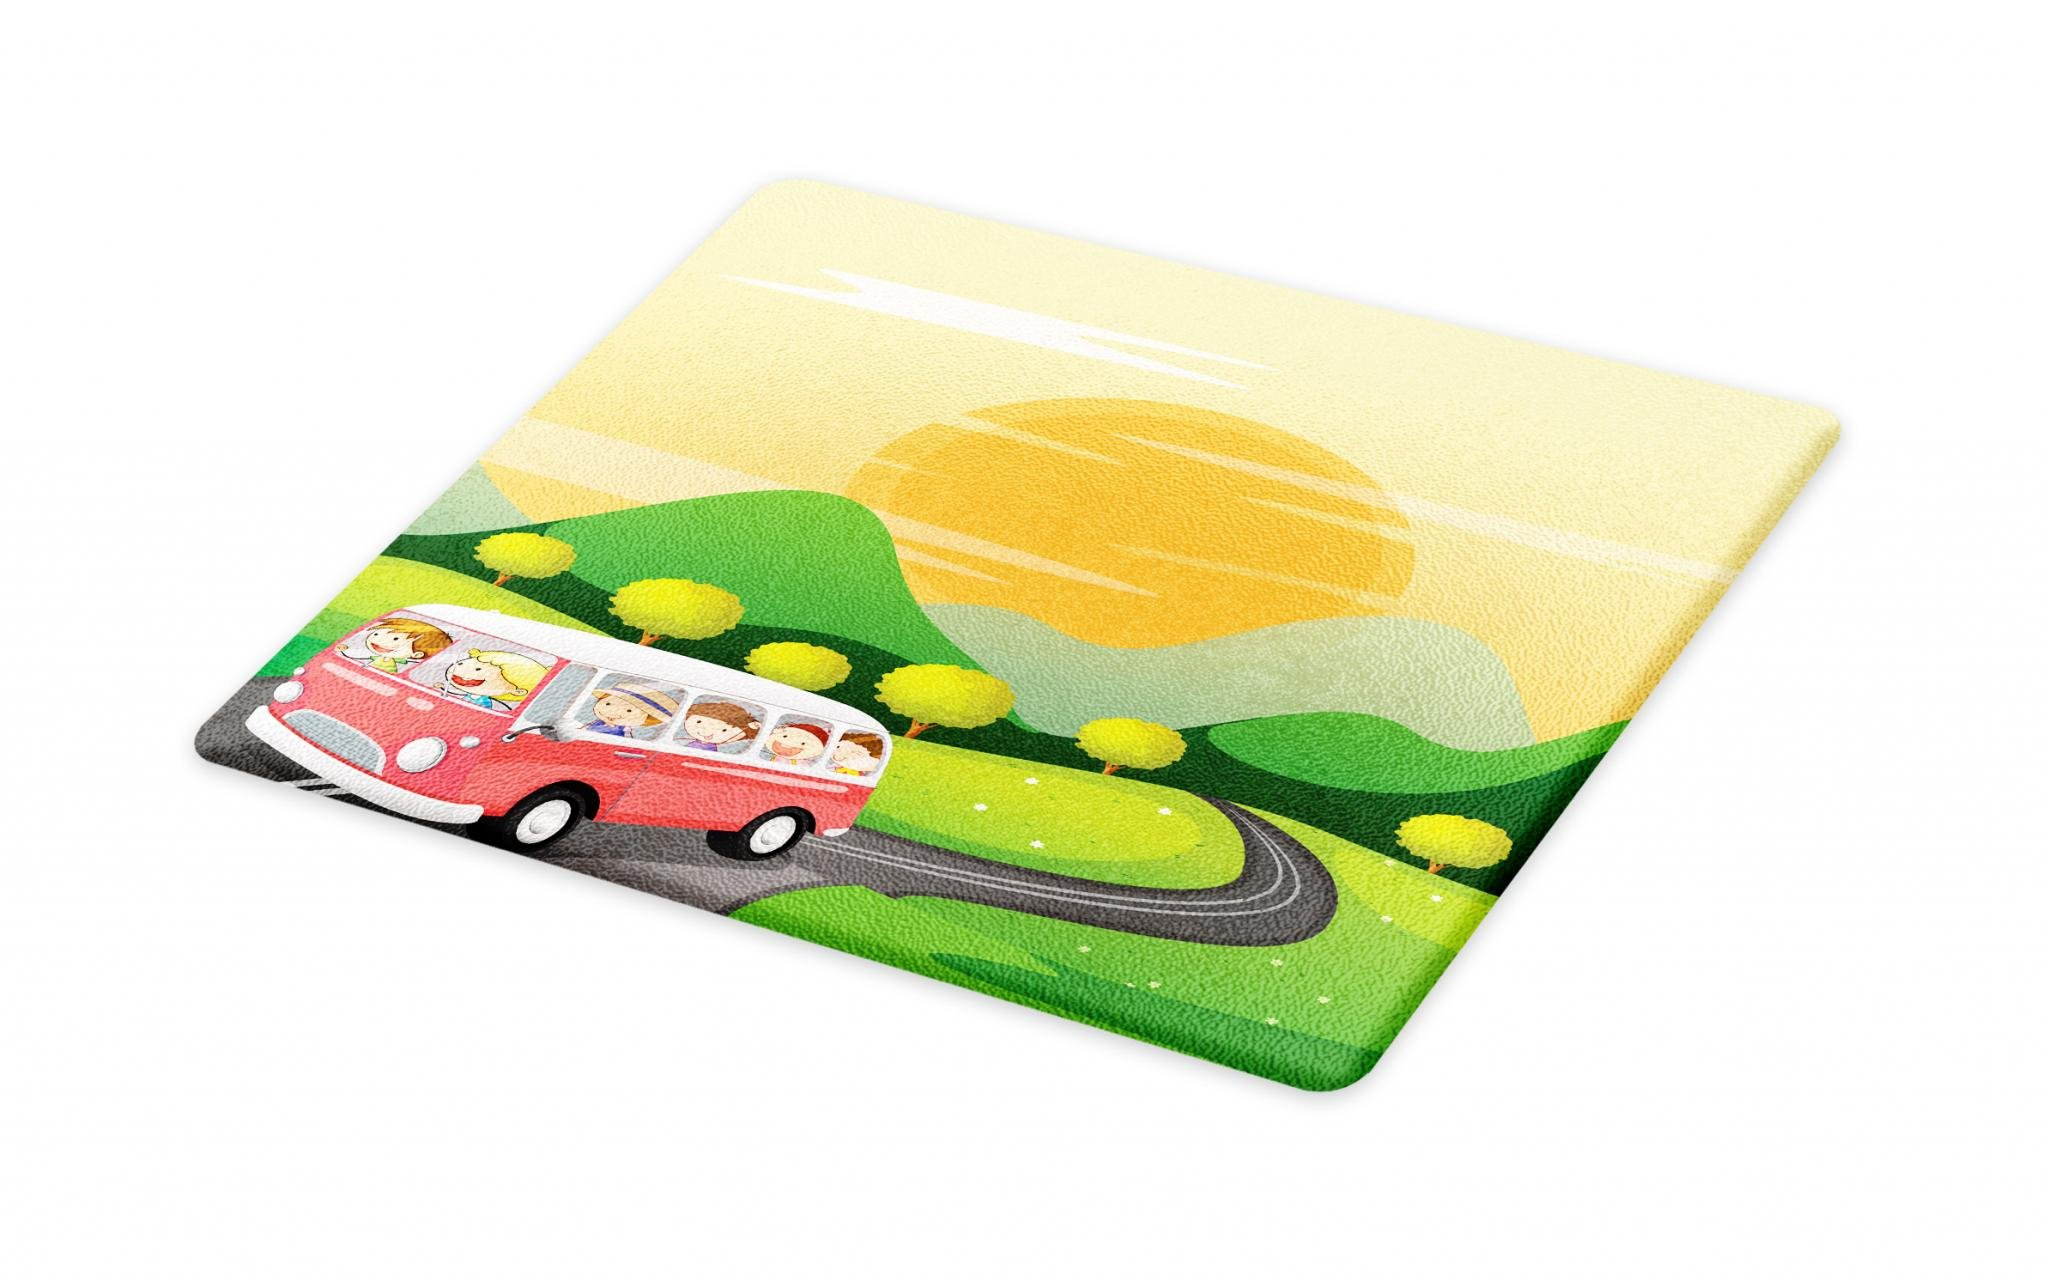 Lunarable Road Trip Cutting Board, School Kids on Their Way to Outdoors Adventure in a Bus Theme Forest Nature Print, Decorative Tempered Glass Cutting and Serving Board, Large Size, Multicolor